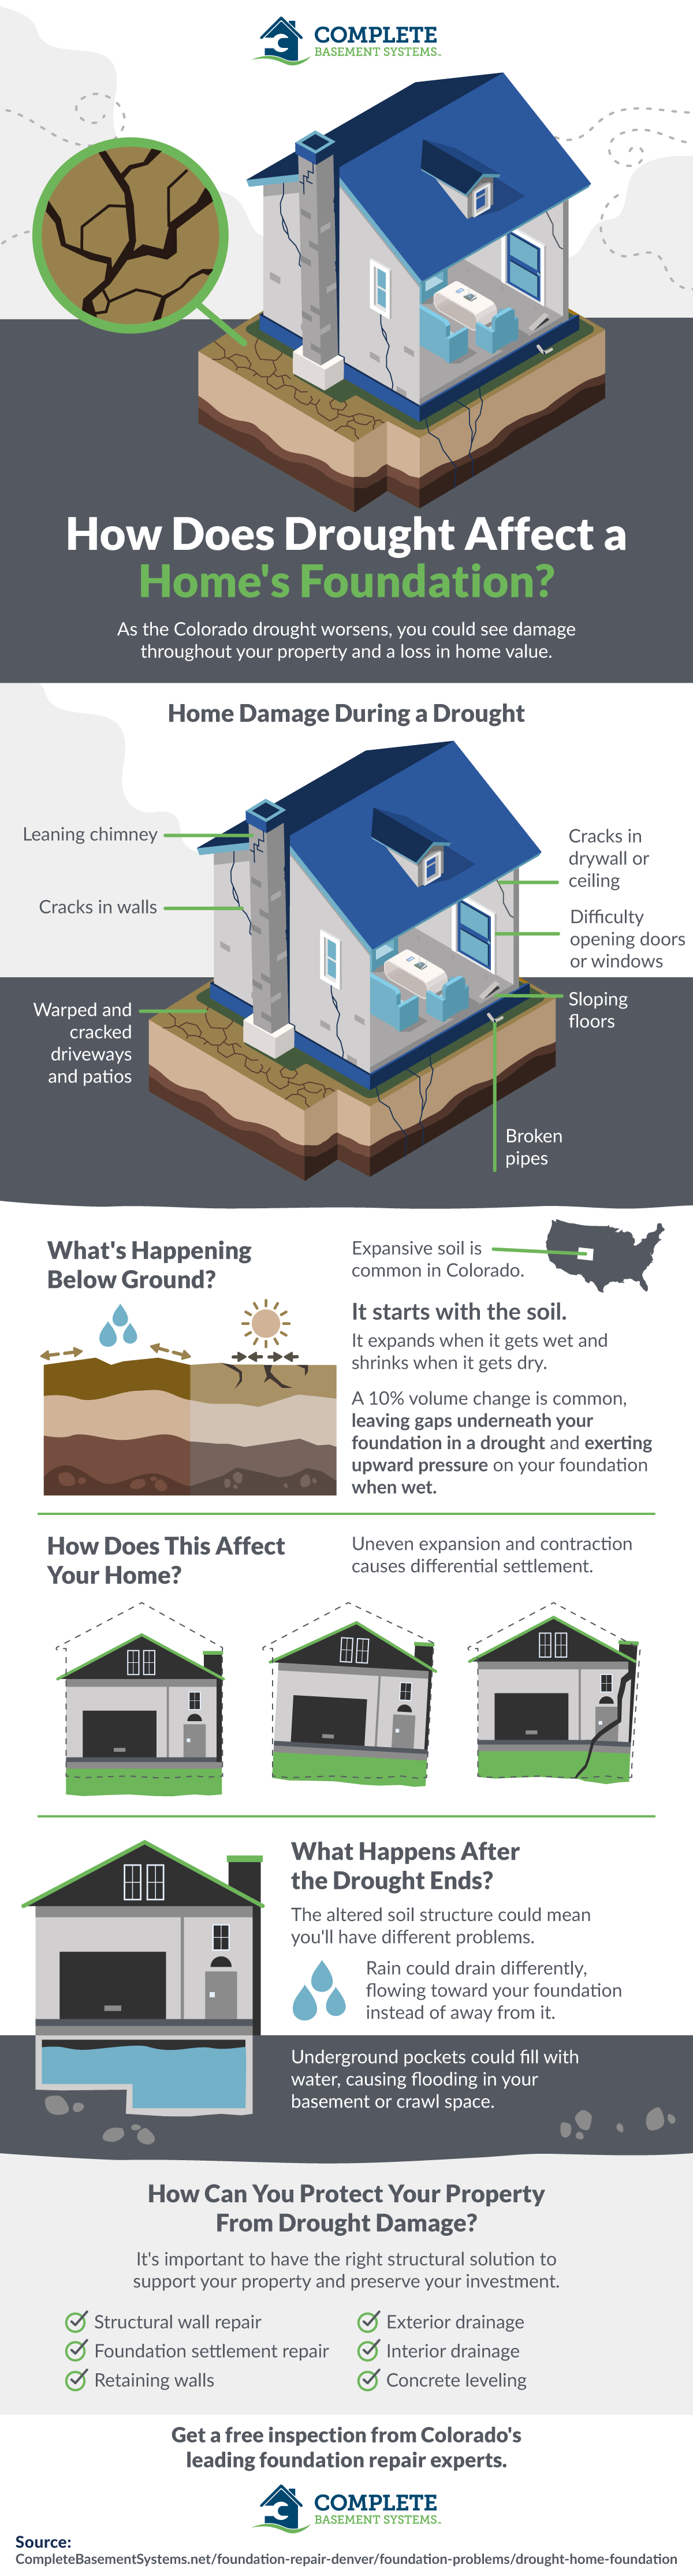 How Does Drought Affect a Home's Foundation?